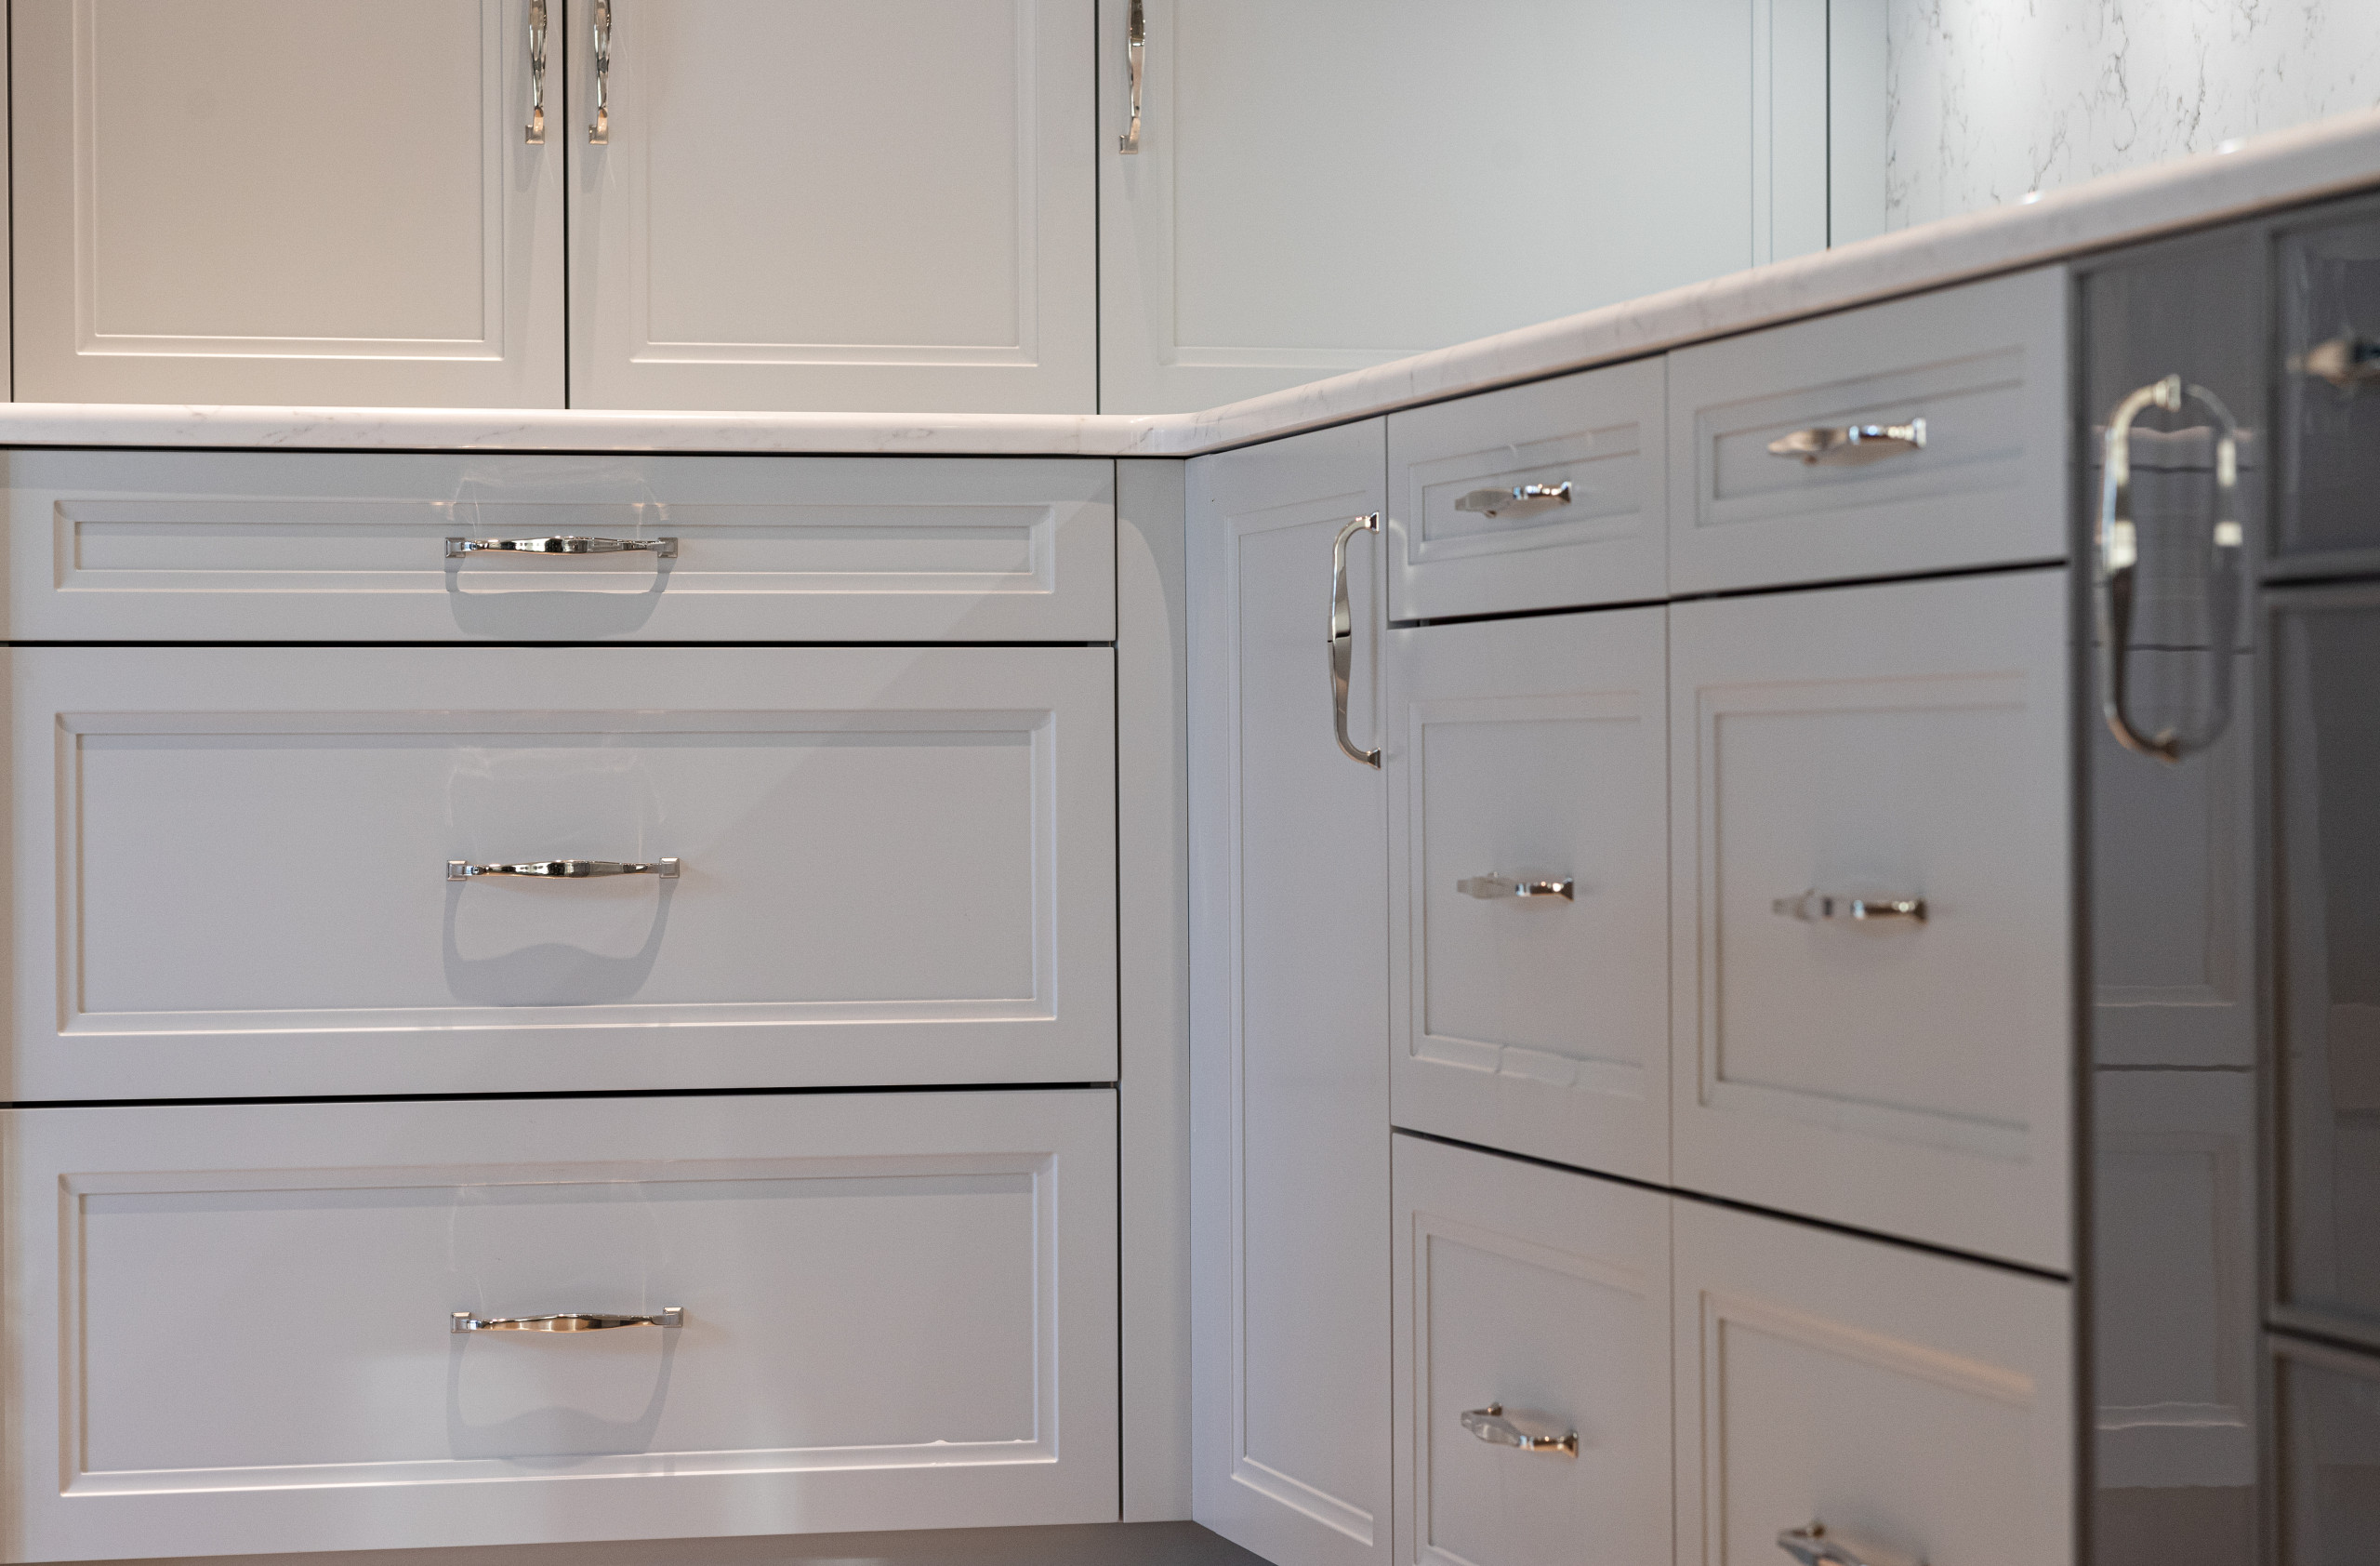 each cabinet is custom designed for specific purposes